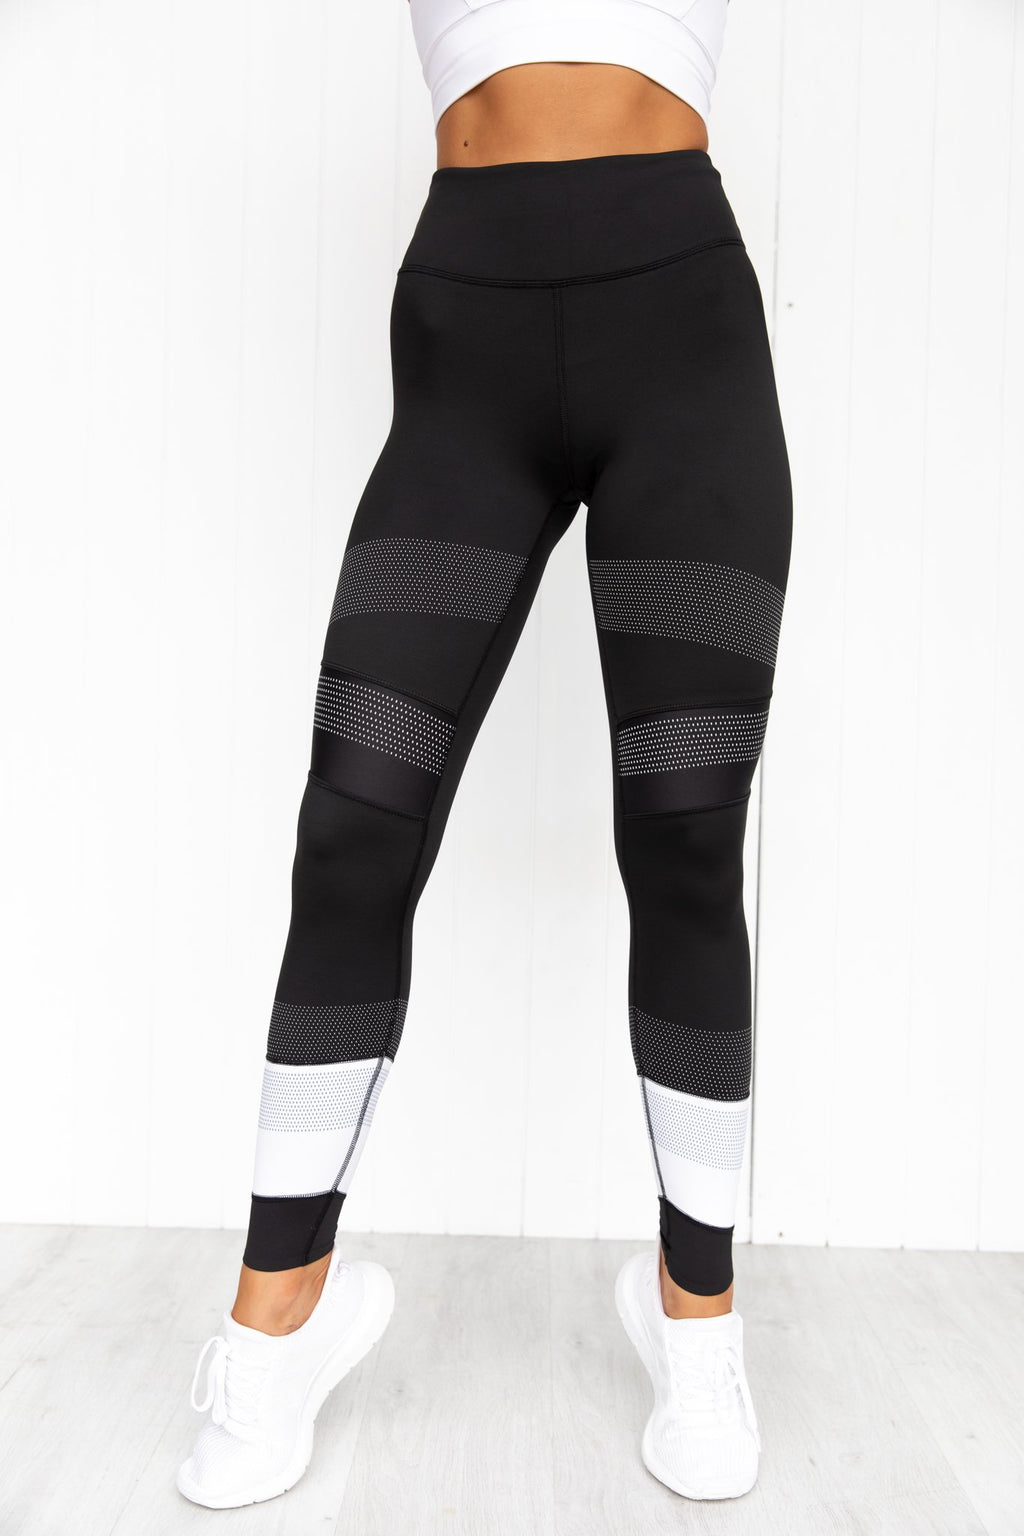 Jade-X Tarmac Black Leggings - PURE DASH